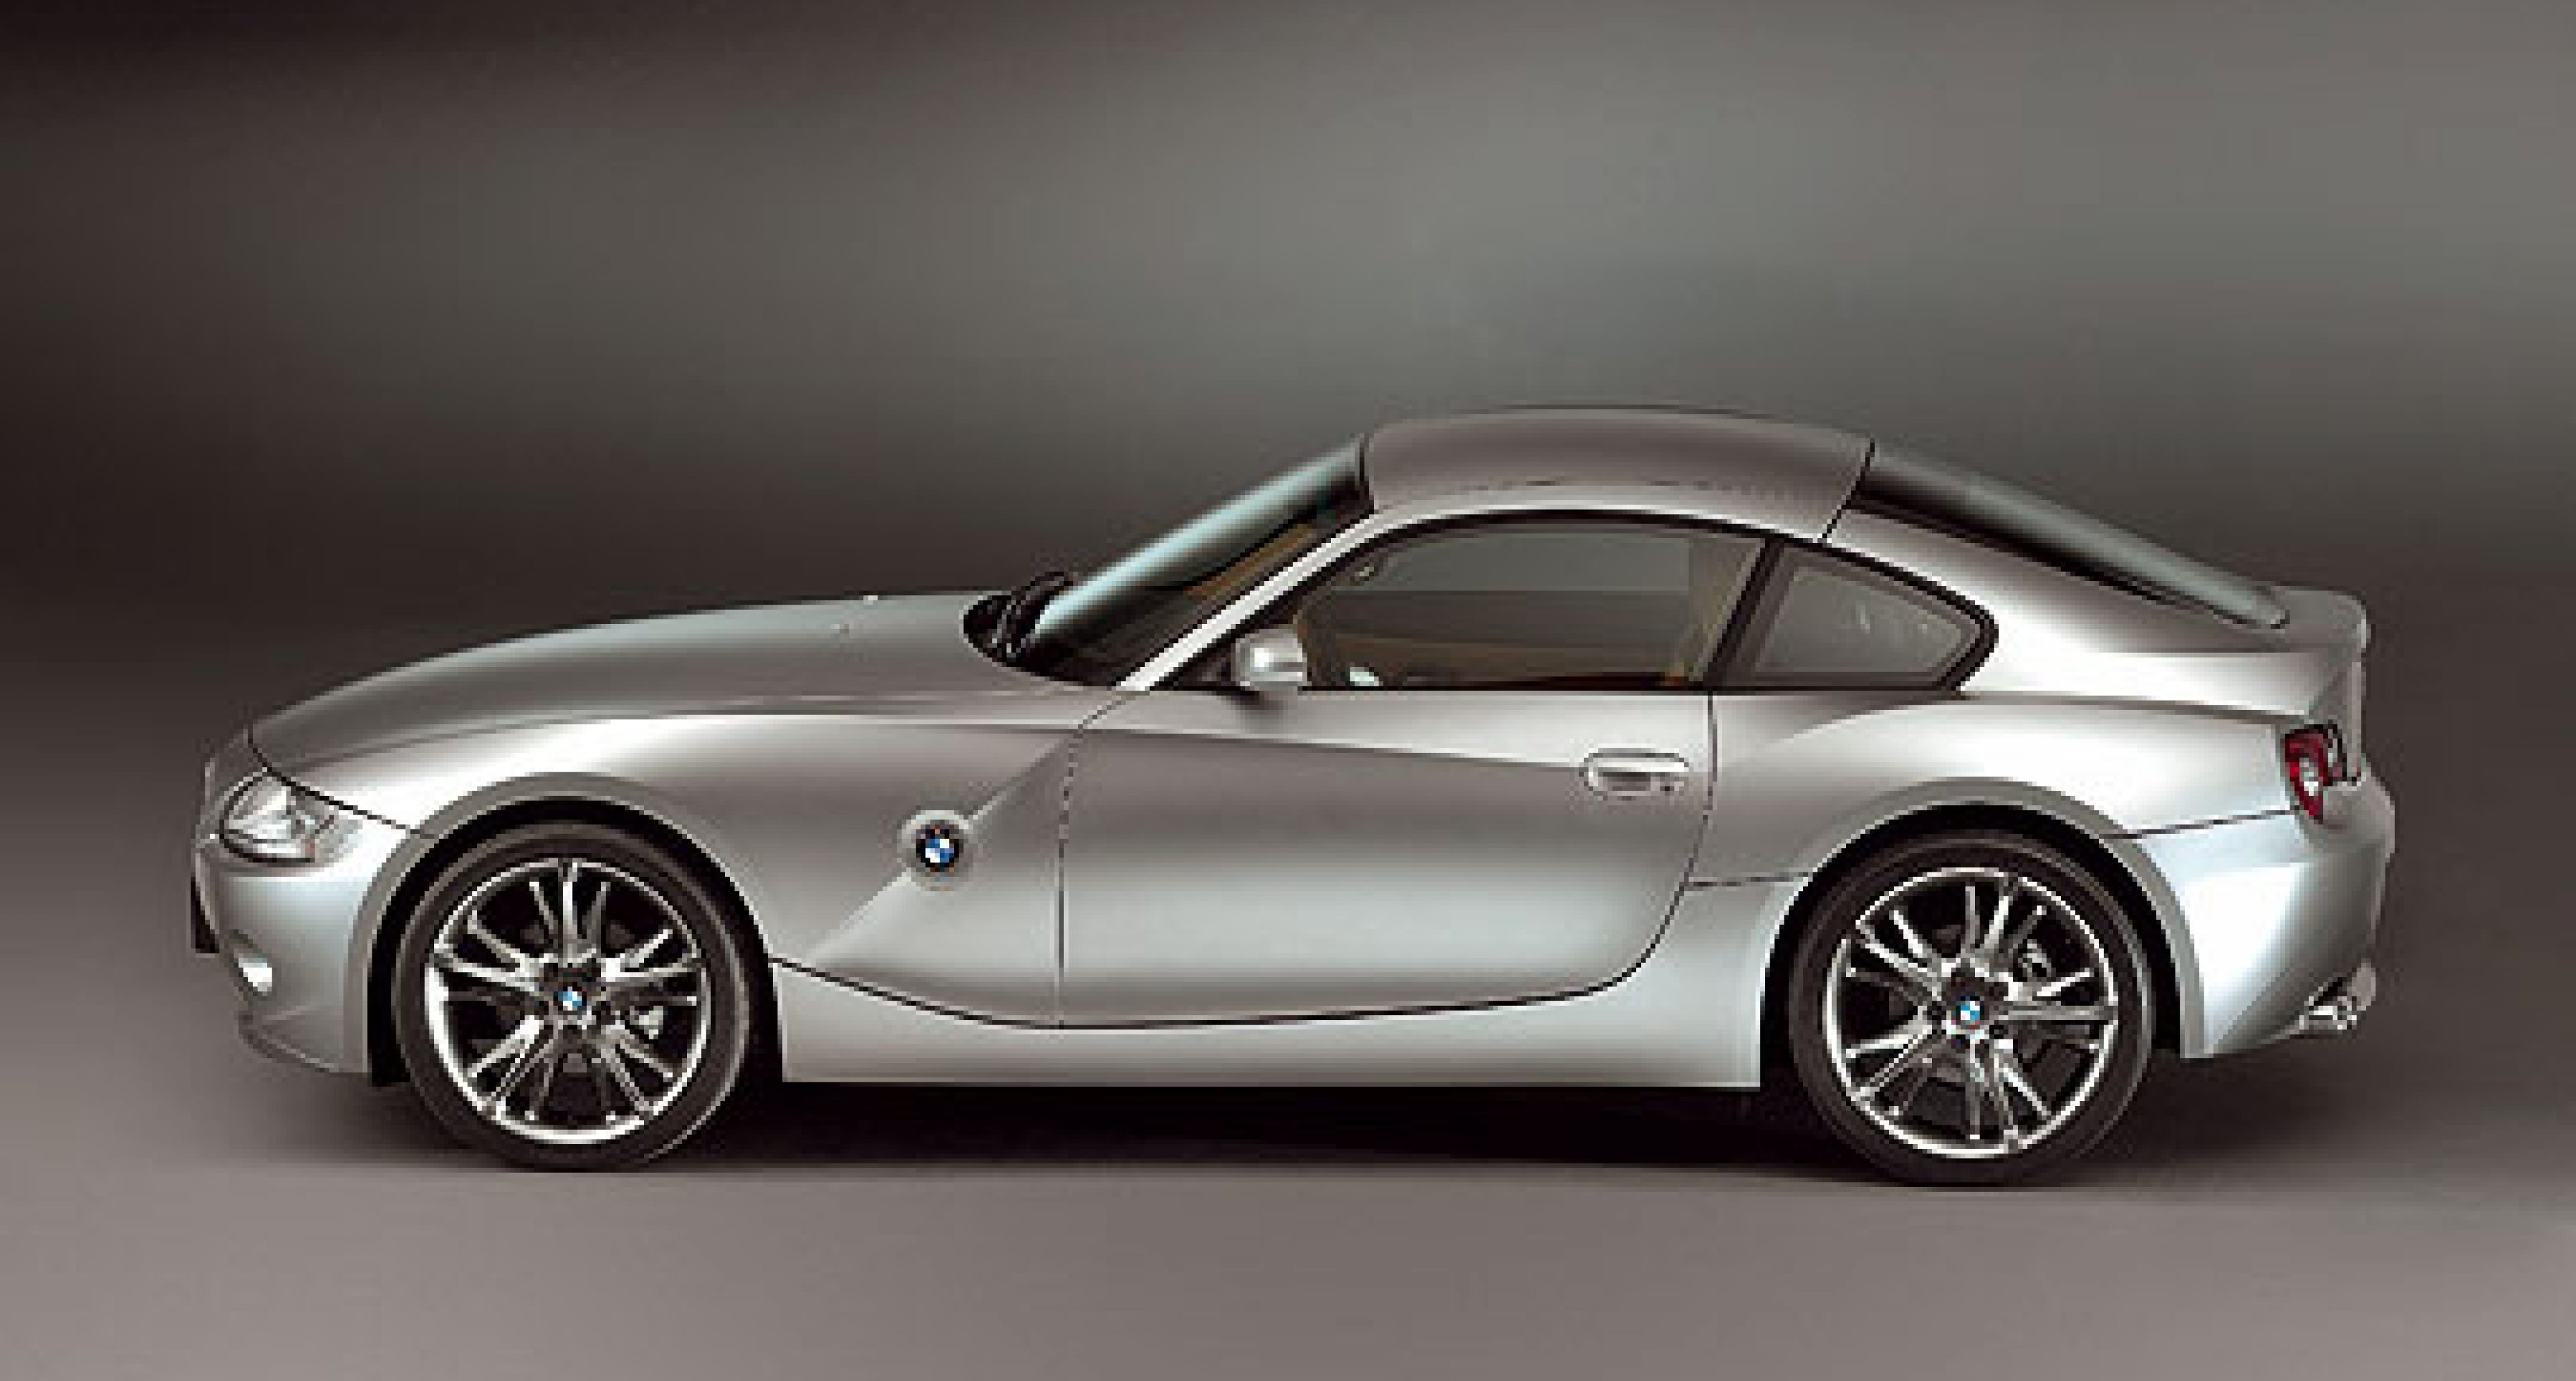 BMW Z4 Coupé - competition for the Cayman